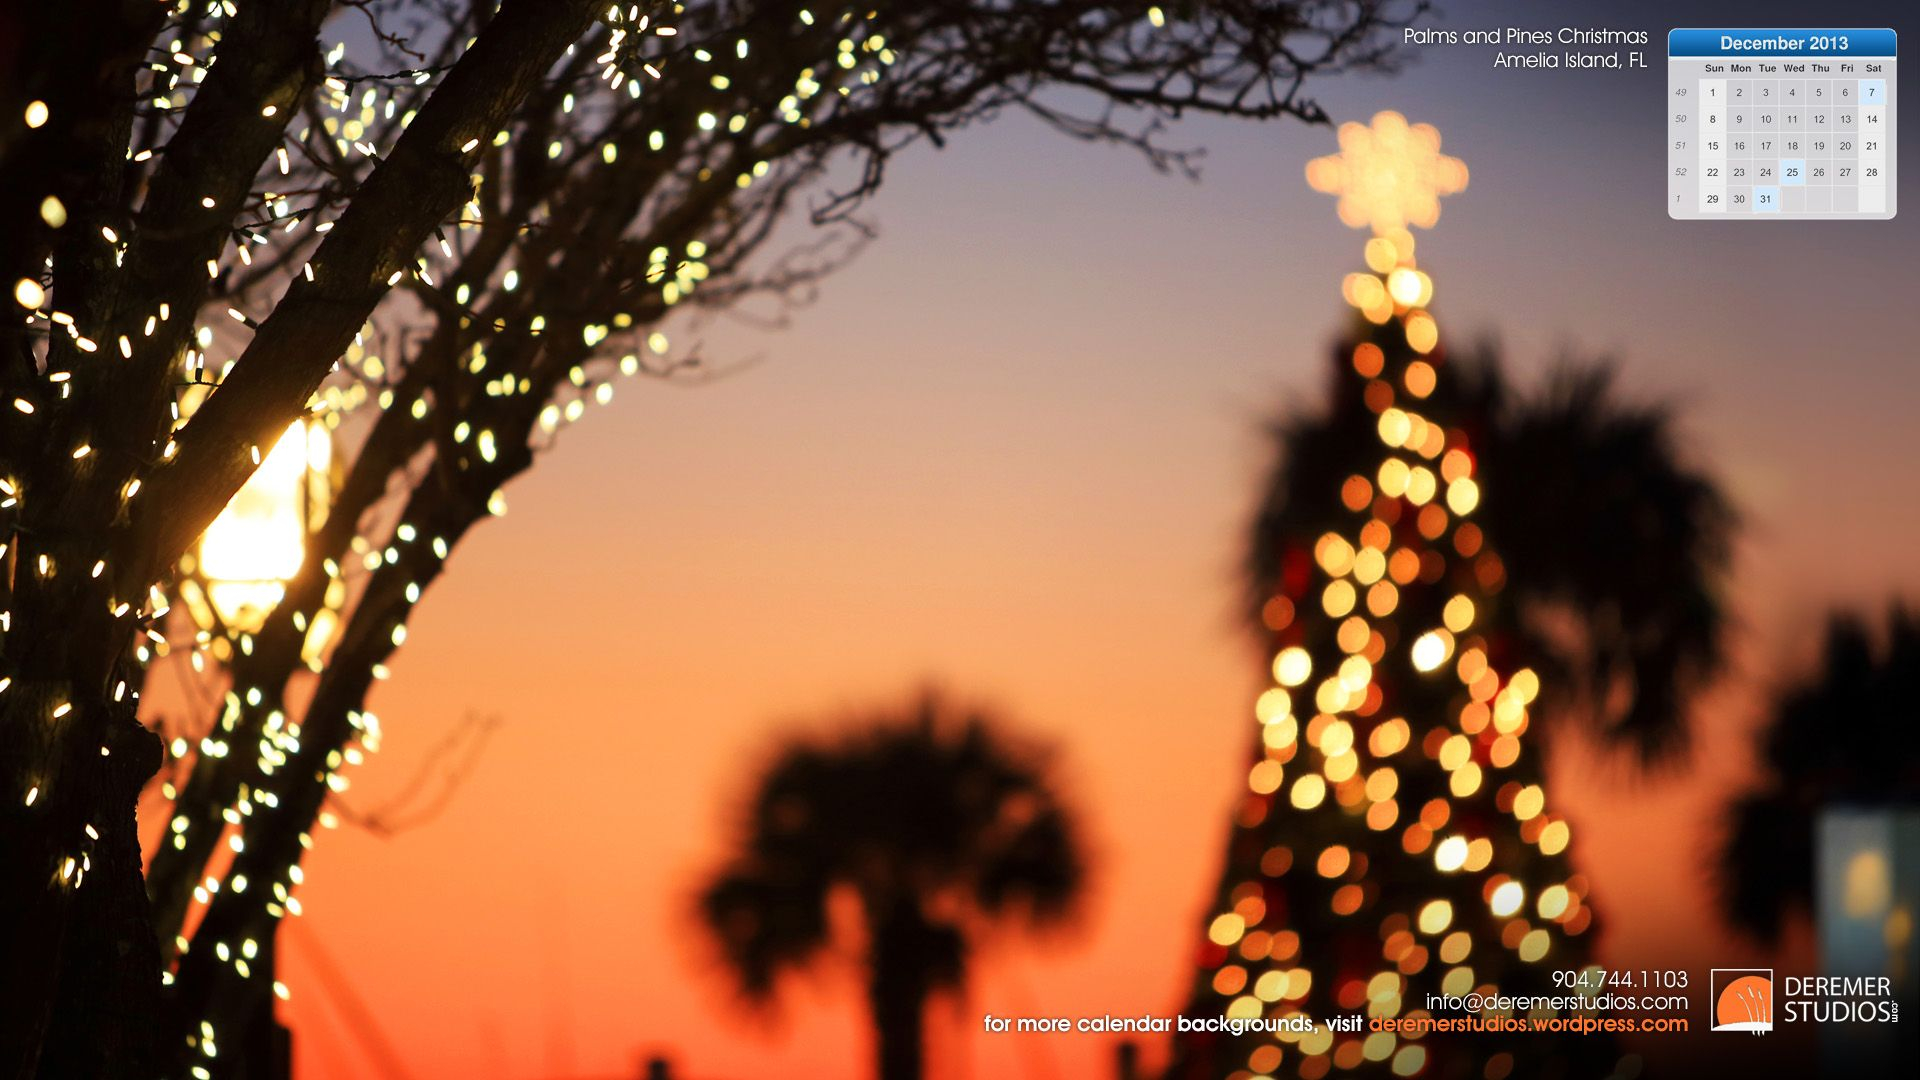 Calendar Time – December Christmas Hd Desktop Wallpaper With What Is The Holiday Schedule For New College Of Florida